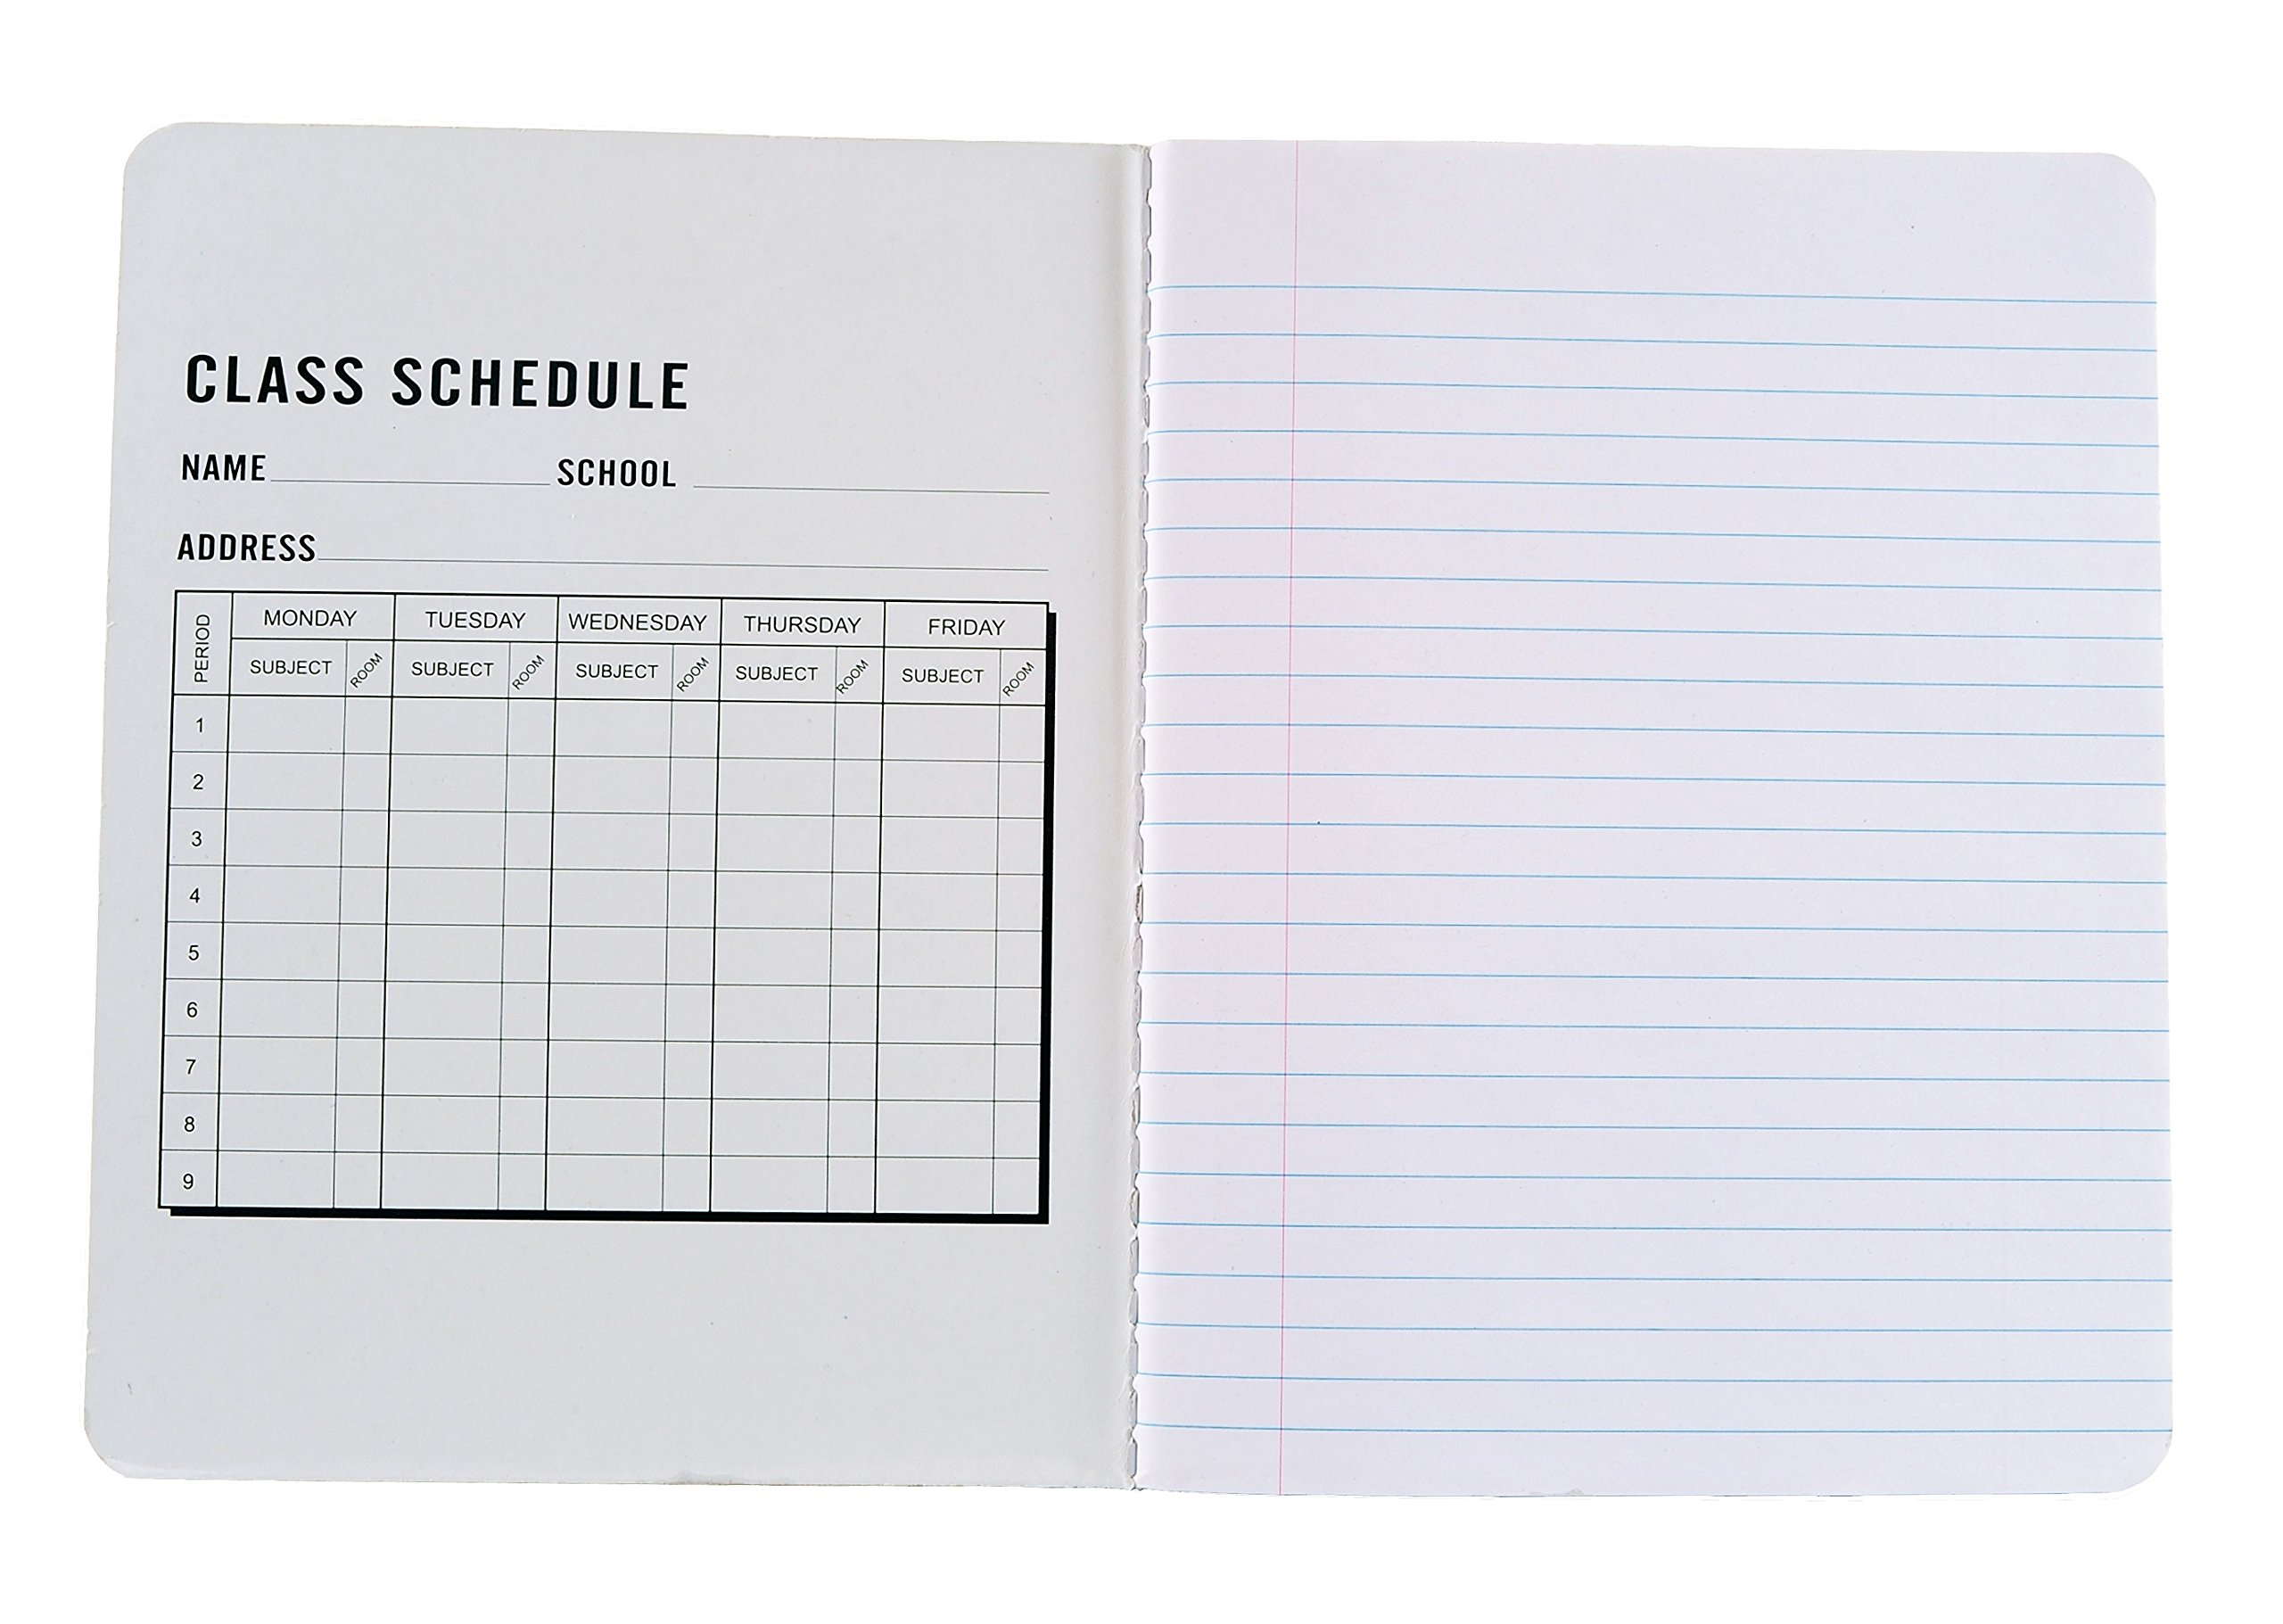 Pack of 6 - Composition Notebooks, 9-3/4'' x 7-1/2'', Wide Ruled, 100 Sheet (200 Pages), Color: Black Marble, Weekly Class Schedule and Multiplication / Conversion Tables on Covers. (6-Pack, Black) by Northland Wholesale (Image #2)